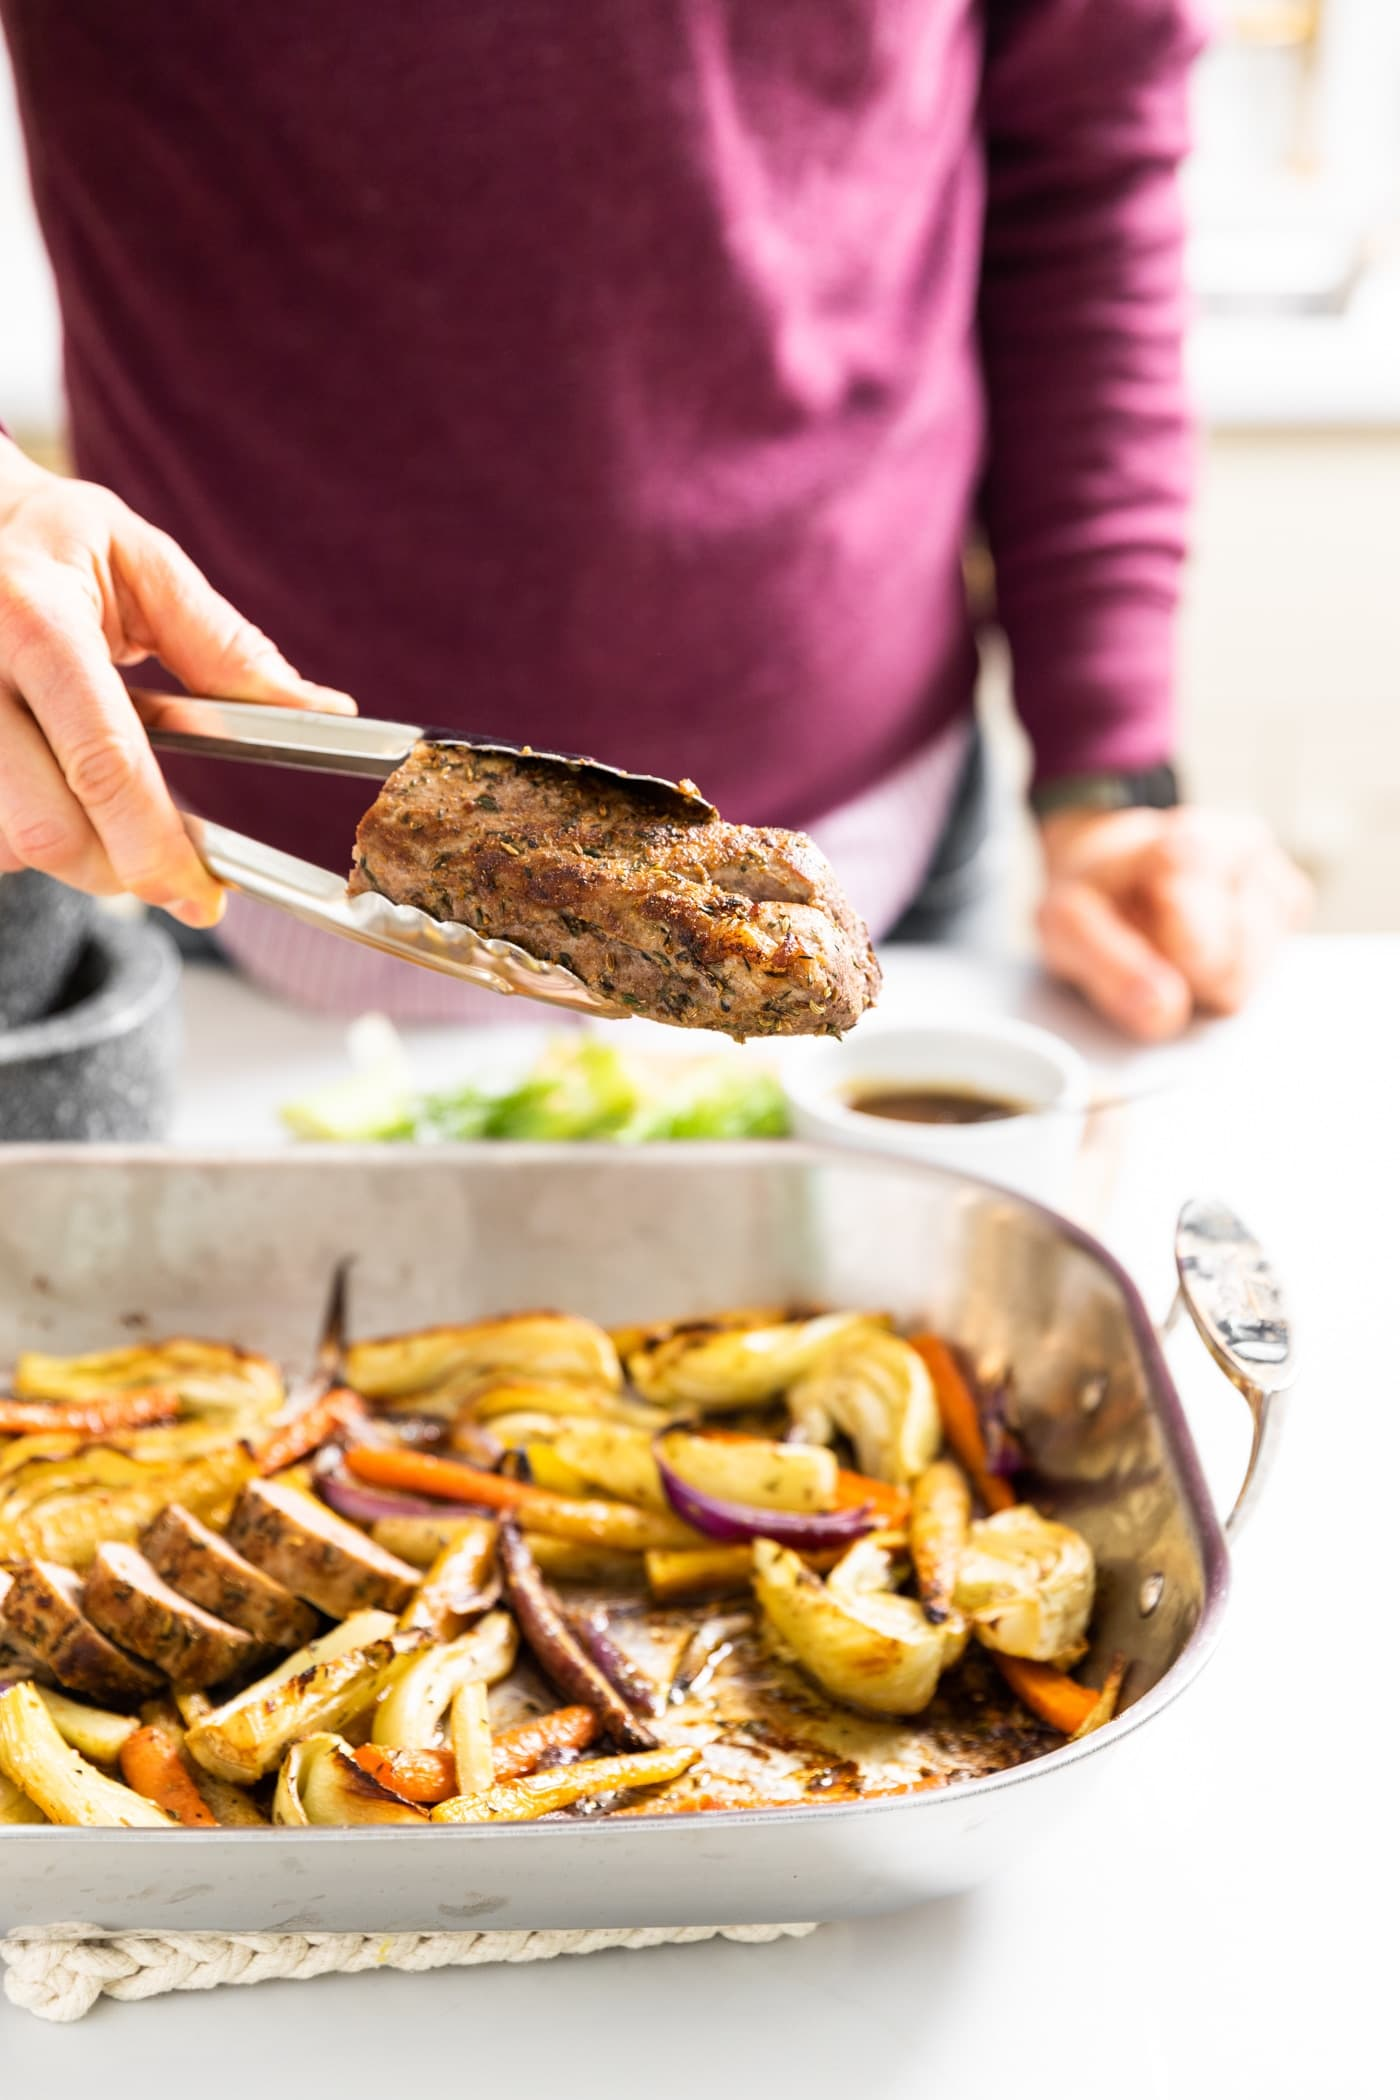 Hand holding tongs clutching a pork tenderloin roast with pan below it filled with slices of roasted vegetables all on white countertop